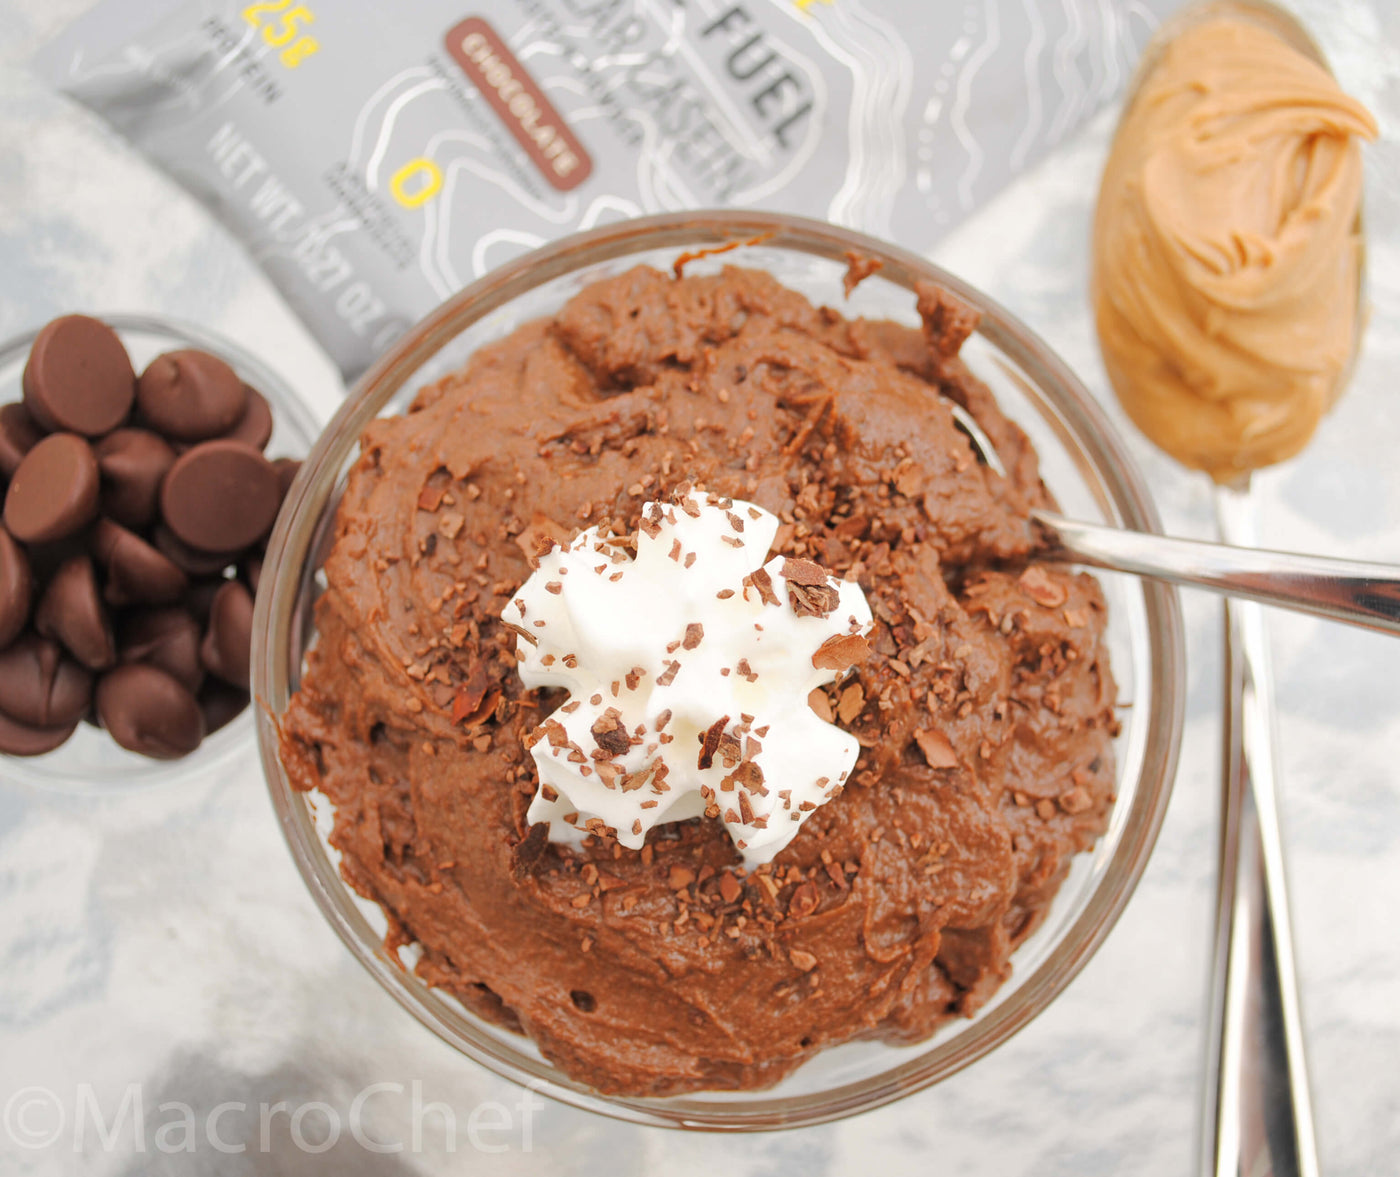 Chocolate Peanut Butter Mousse